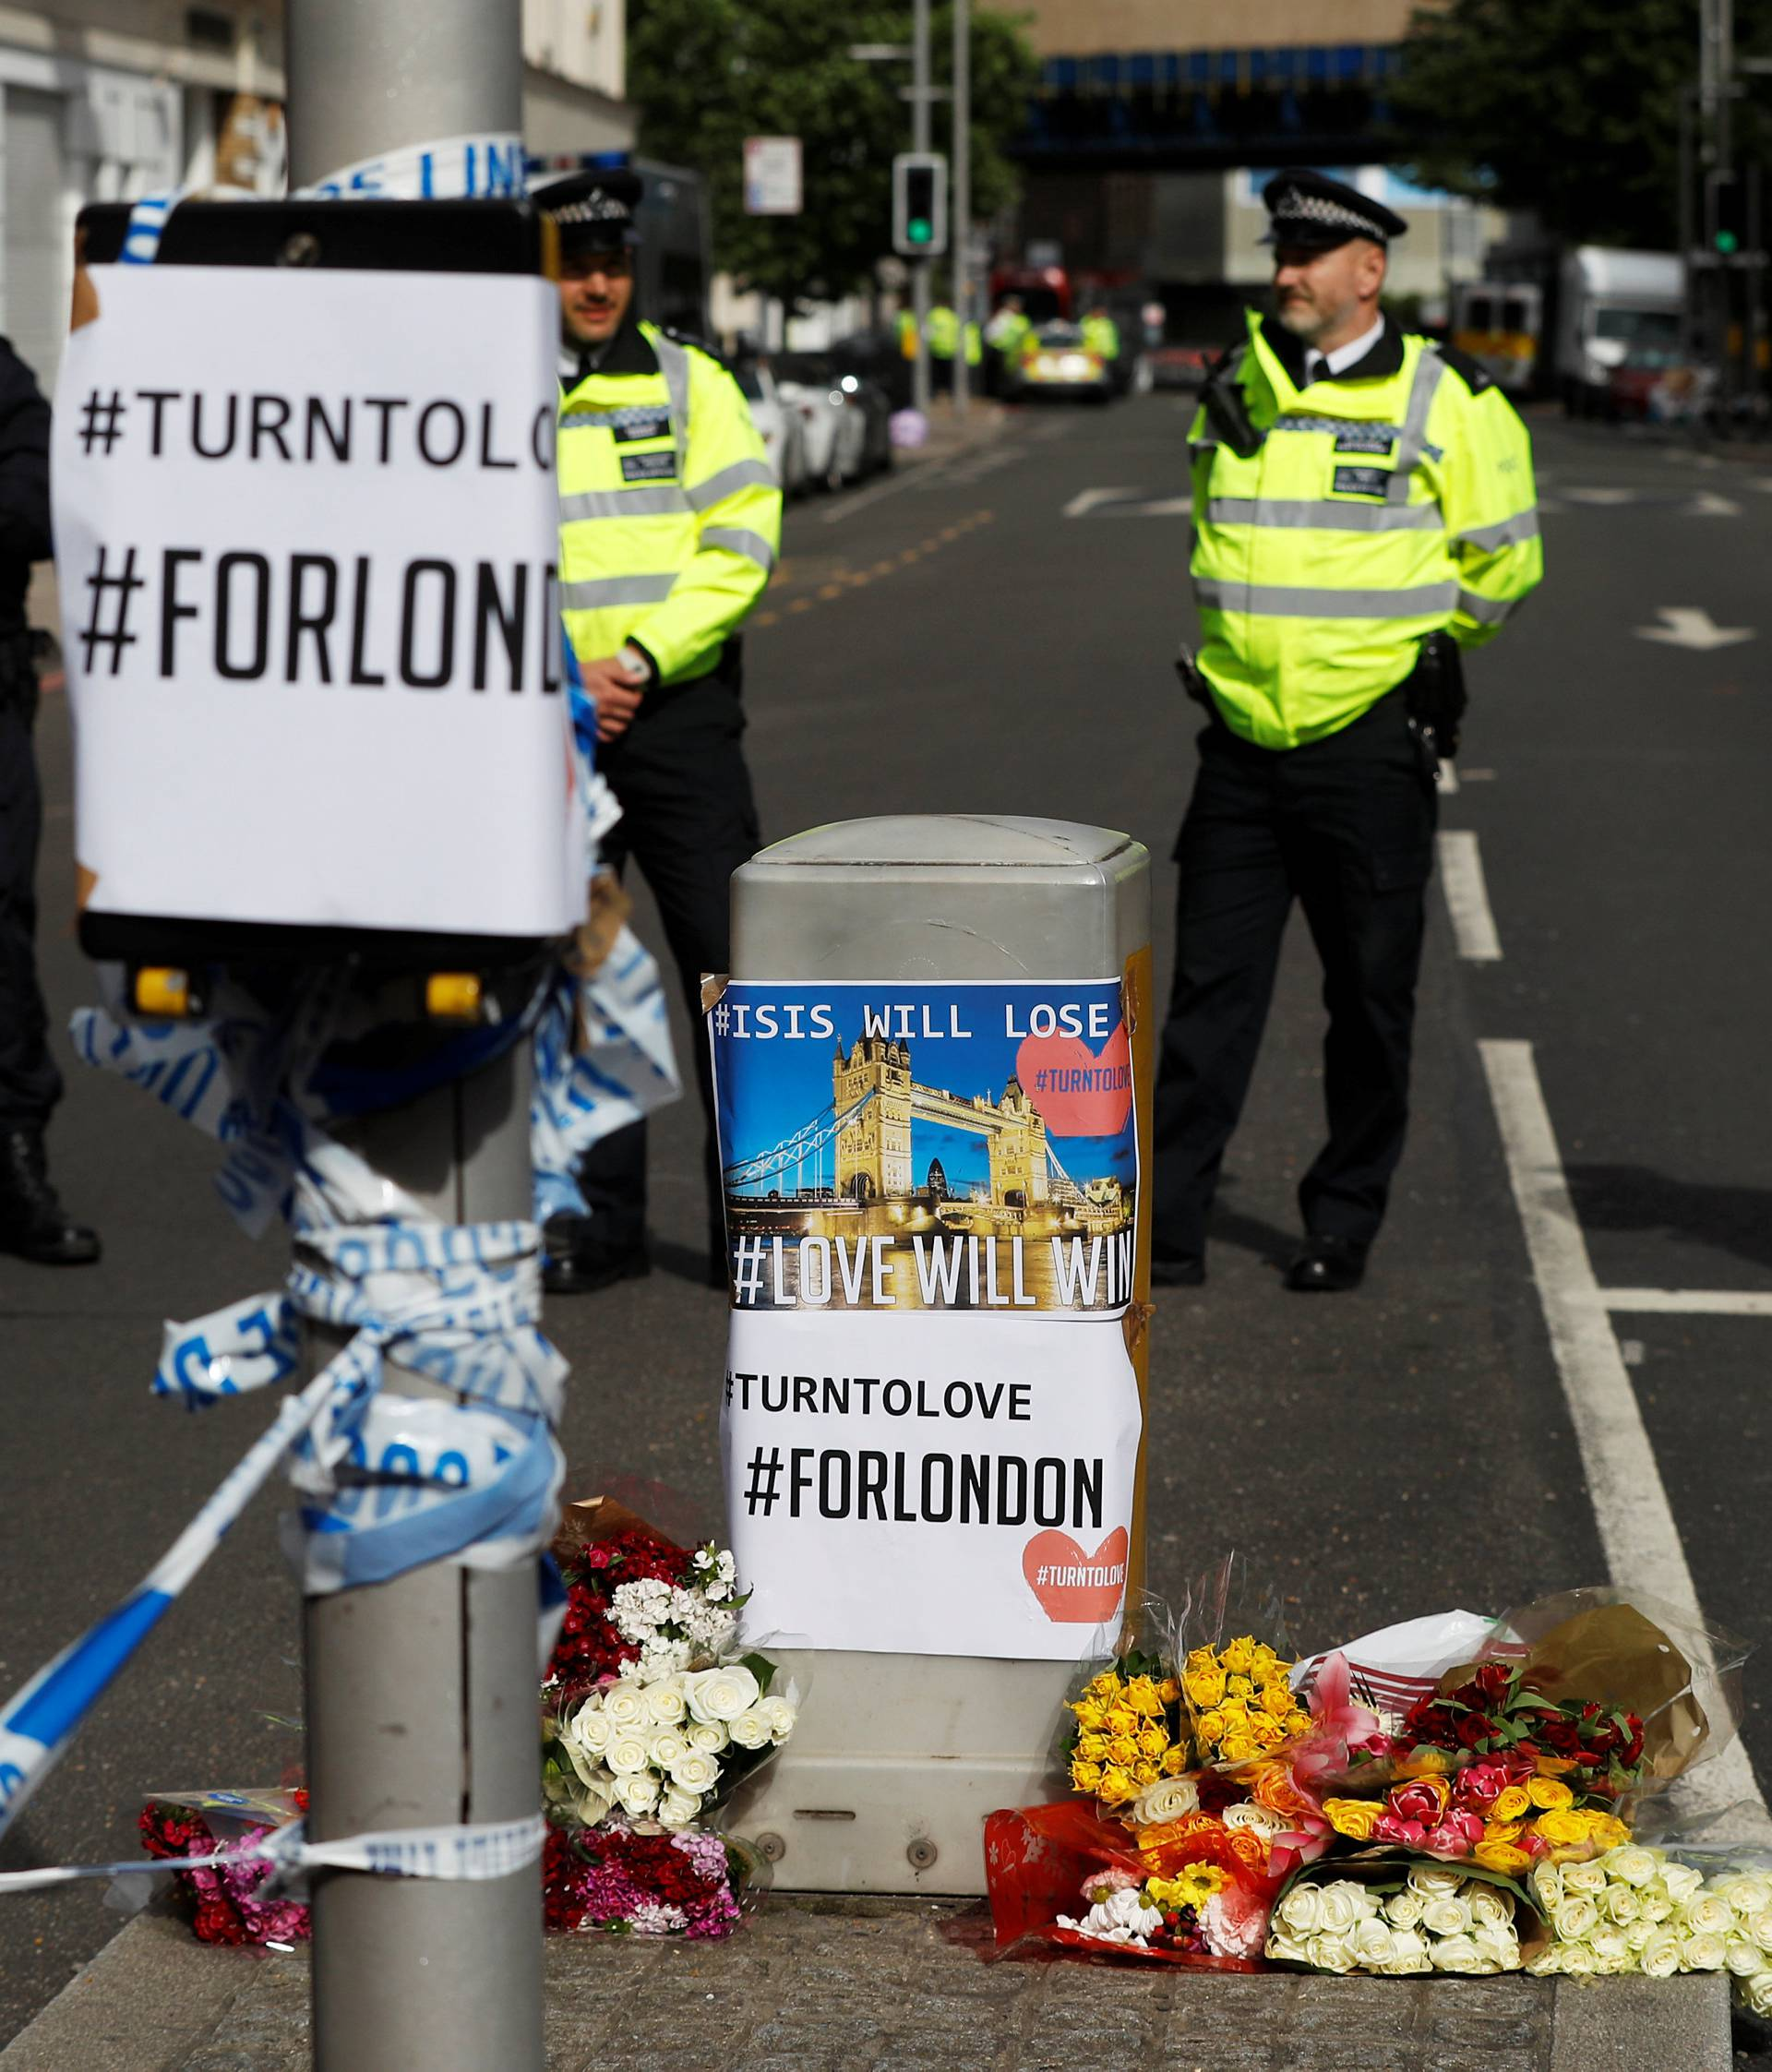 Flowers and messages lie behind police cordon tape near Borough Market after an attack left 7 people dead and dozens injured in London